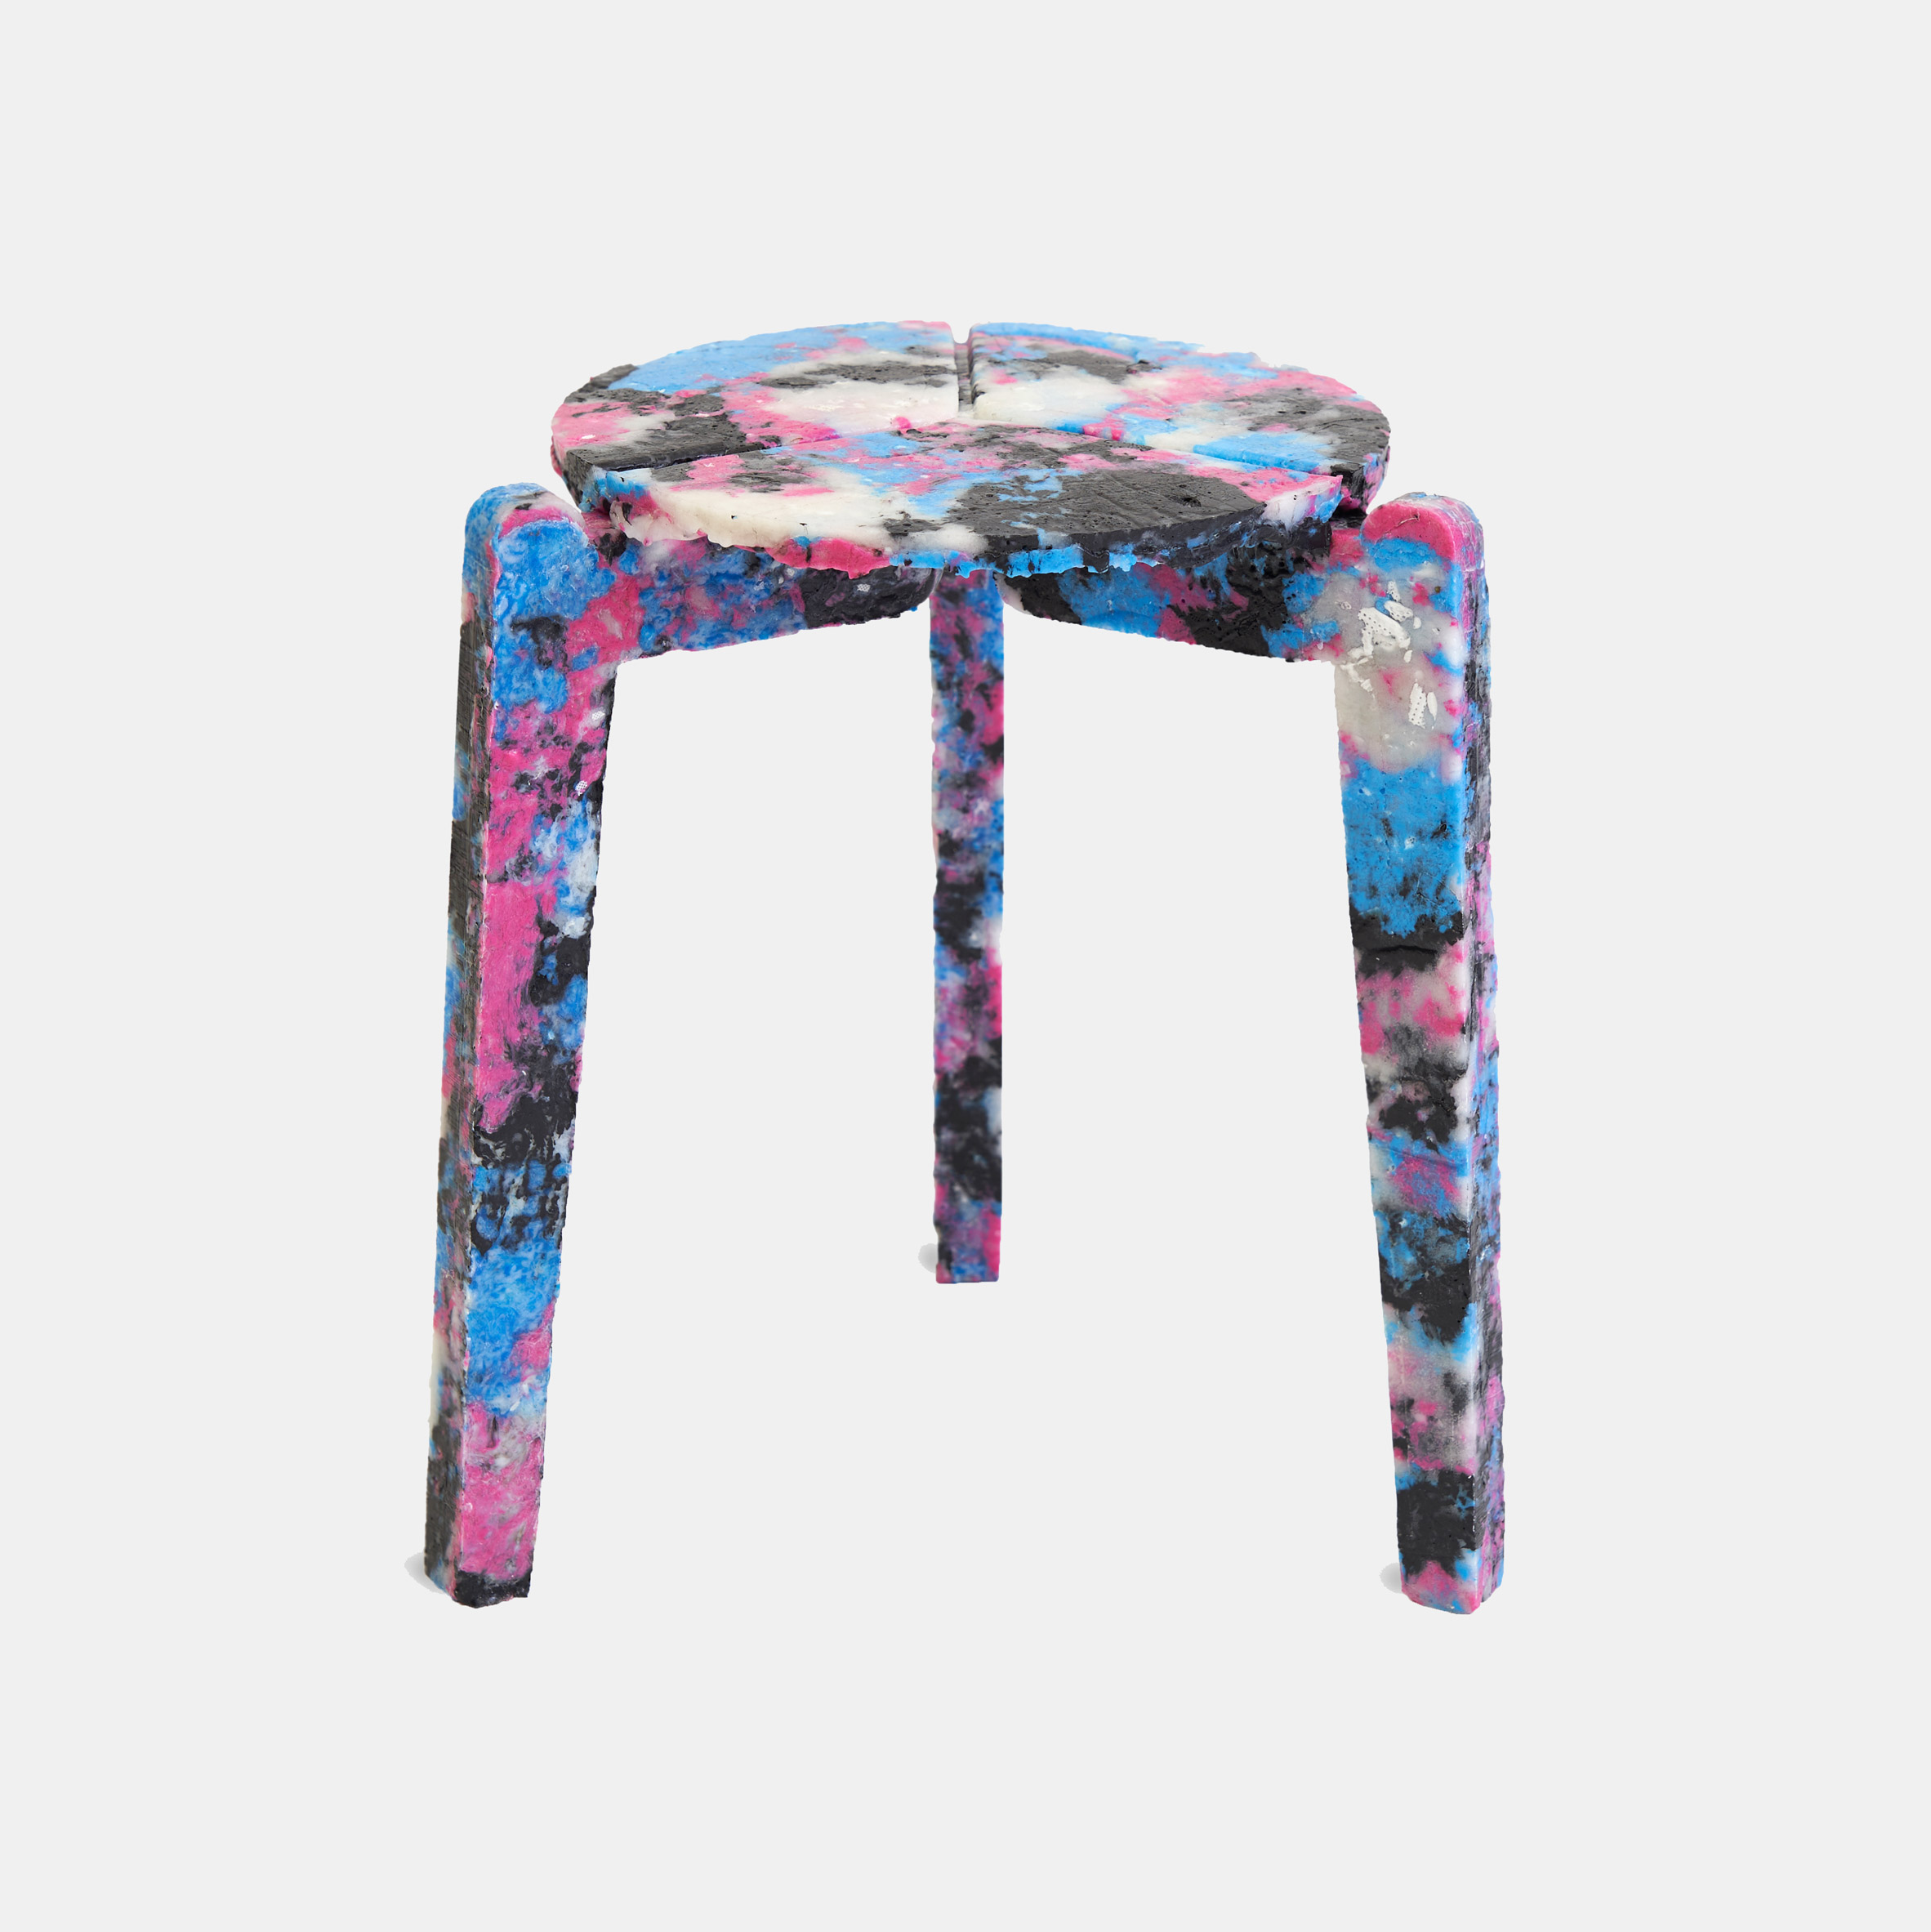 Multicoloured Stack and Stack stool by Haneul Kim